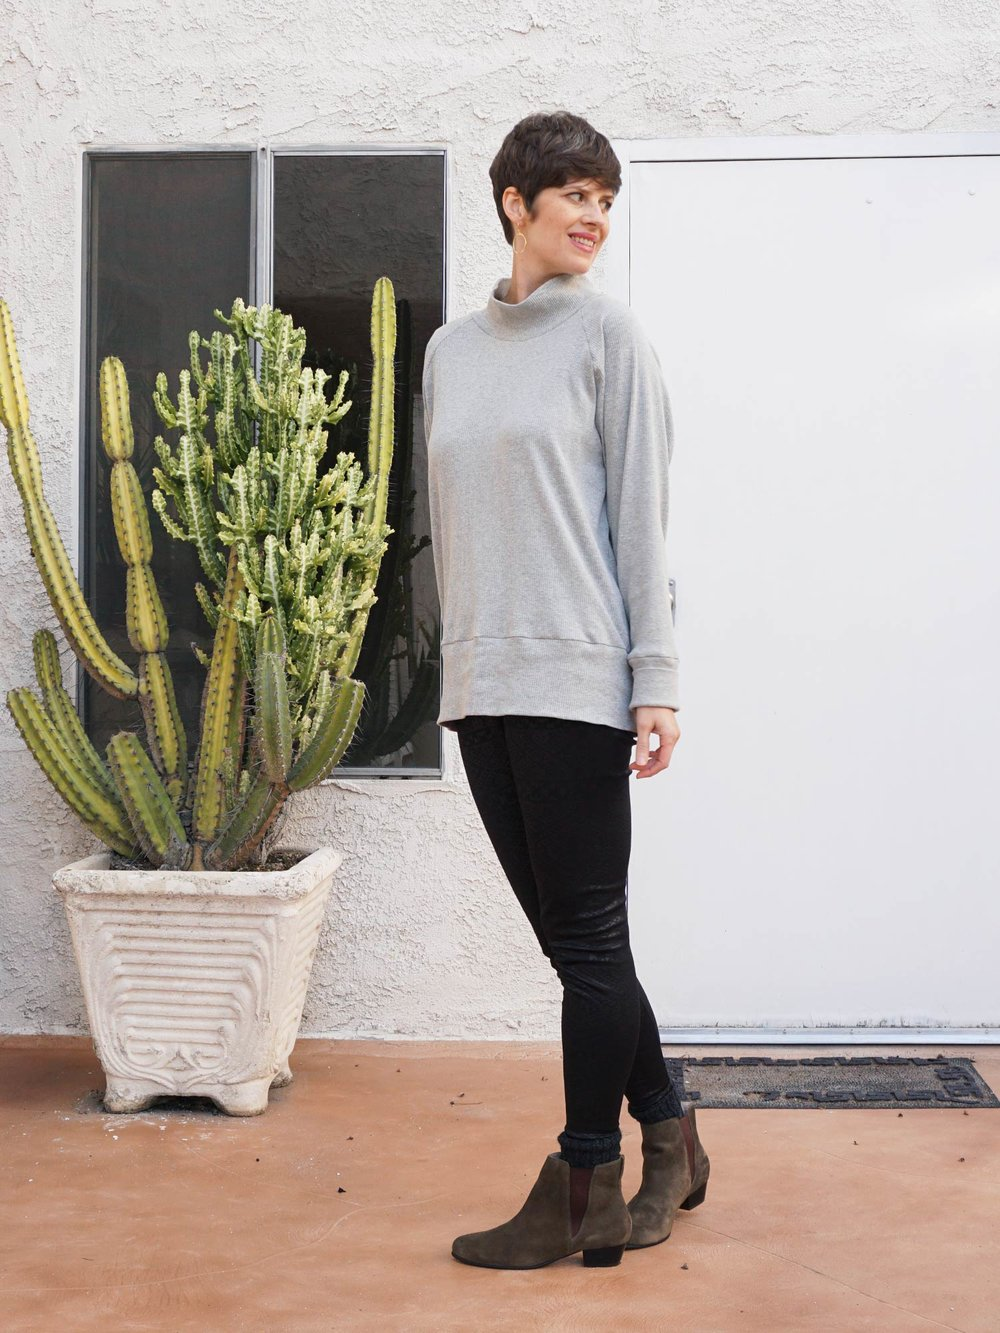 Rib Knit Turtleneck. A review of the Toaster Sweater 1 pattern by Sew House 7 | Sew DIY